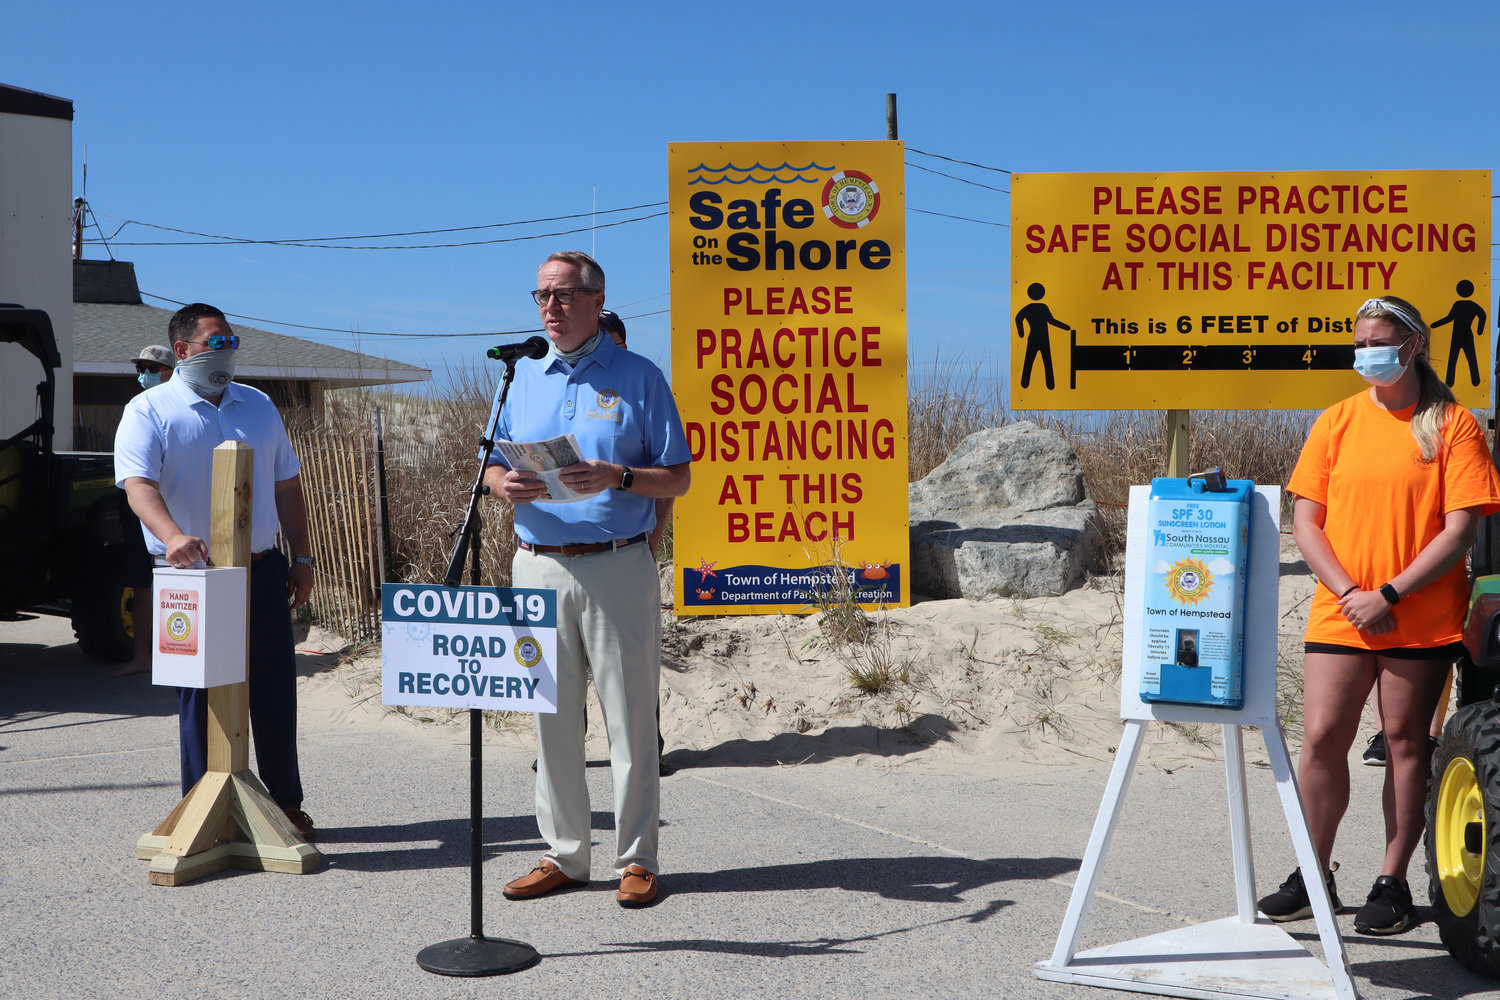 Town of Hempstead officials announced a support team to keep residents safe, while at town beaches.